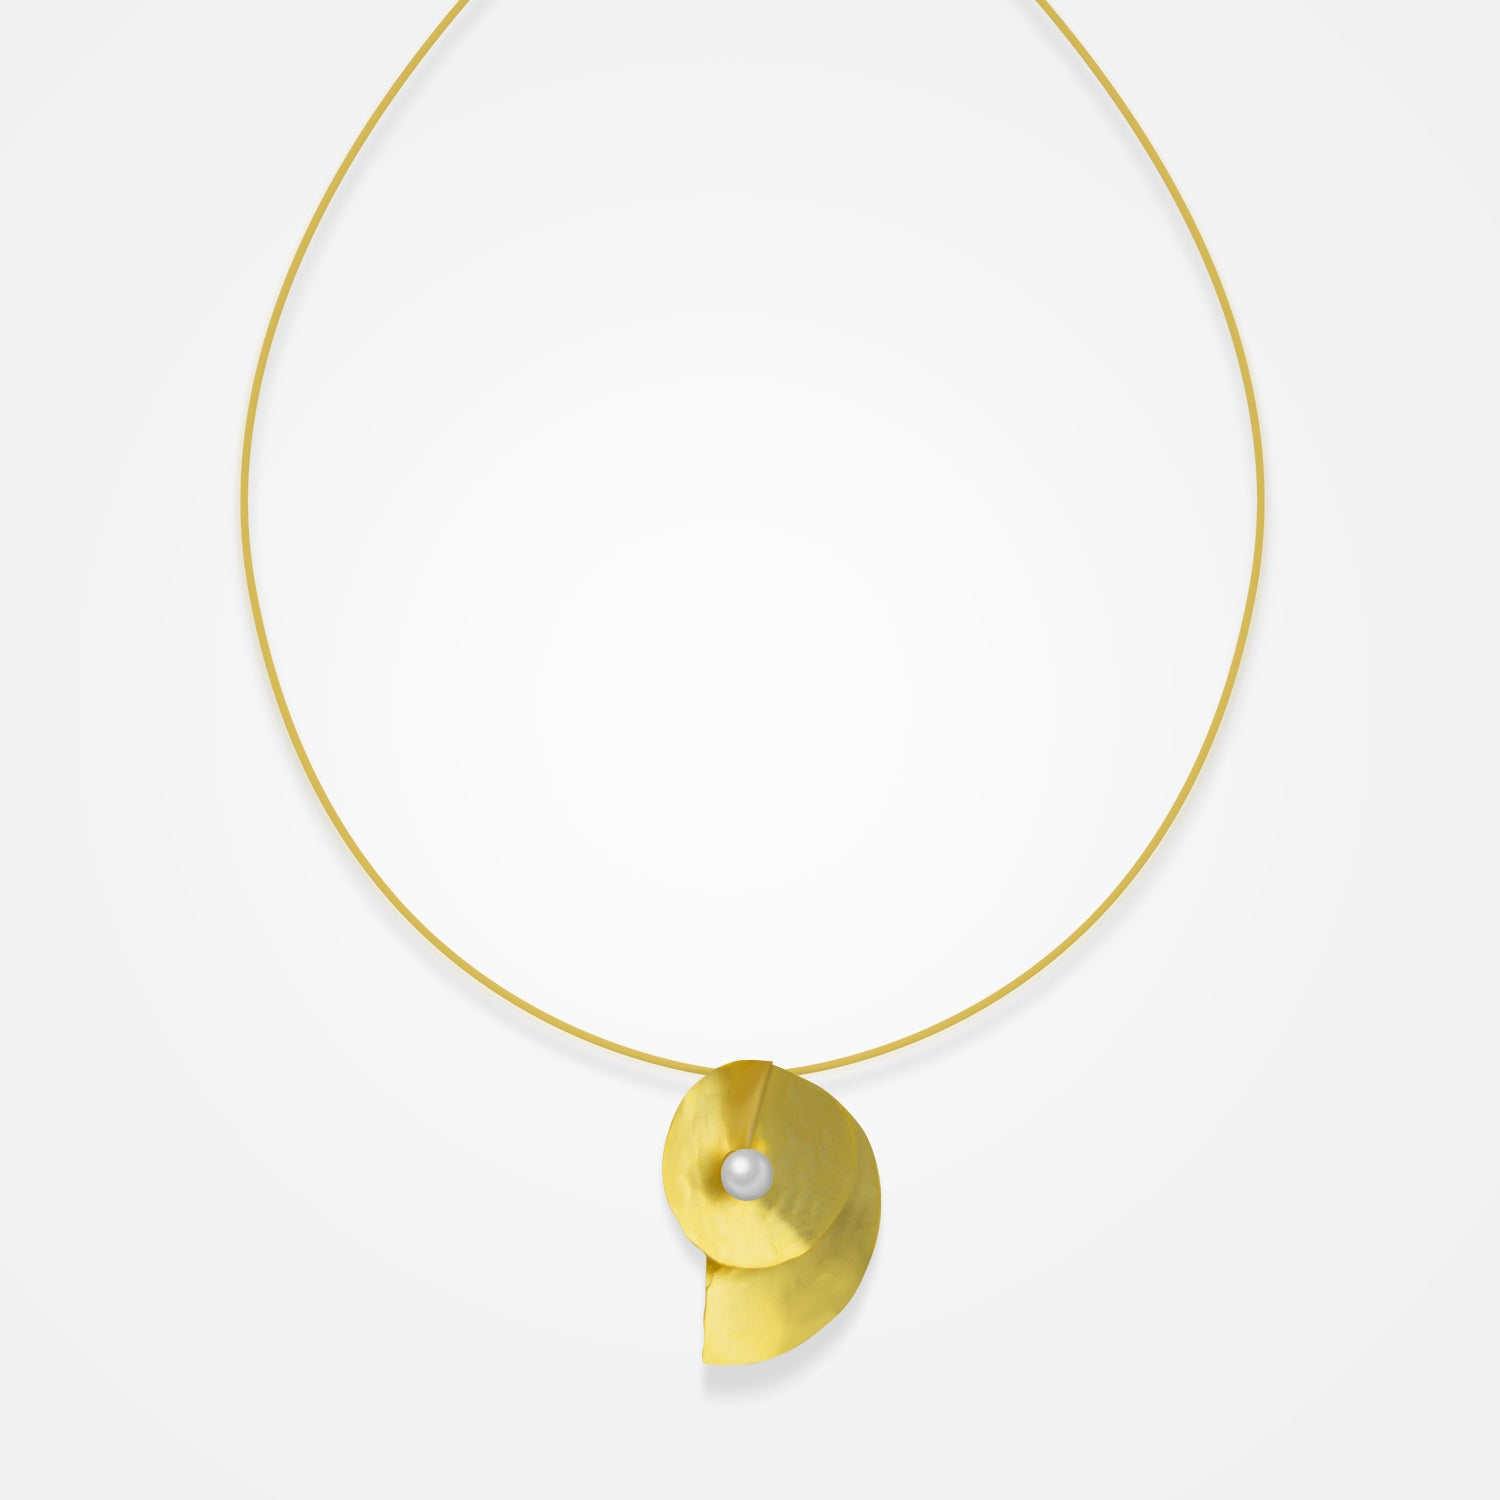 Handcrafted Golden Half-moon Pearl Necklace by FO.BE